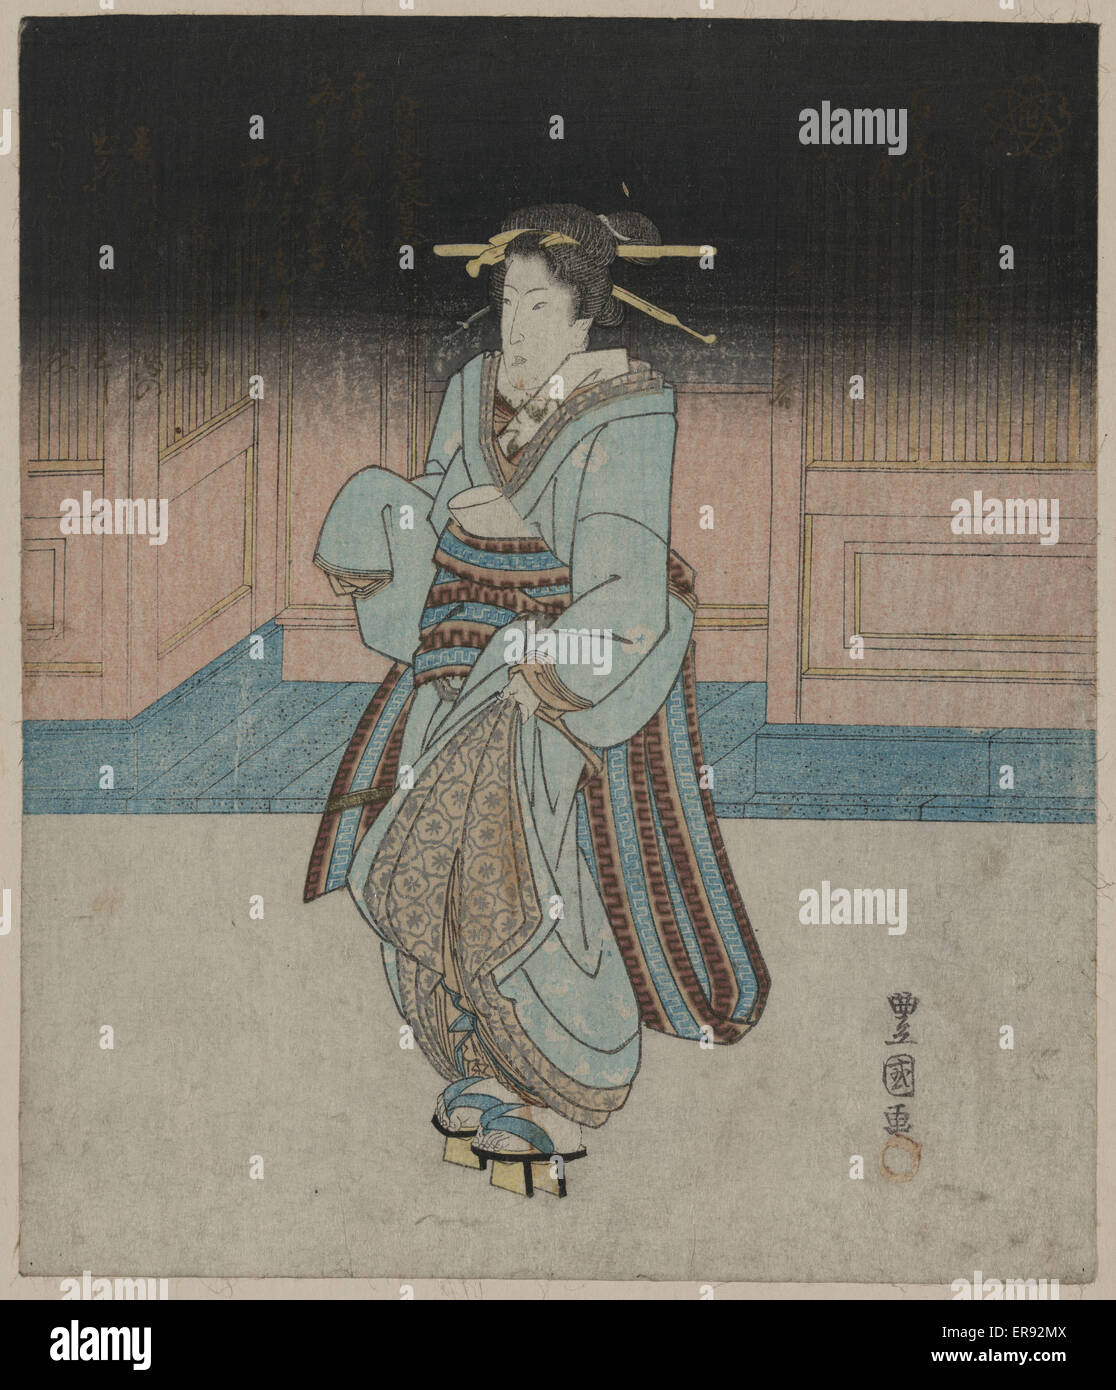 A geisha on an evening stroll in Fukagawa. Date between 1828 and 1833. - Stock Image